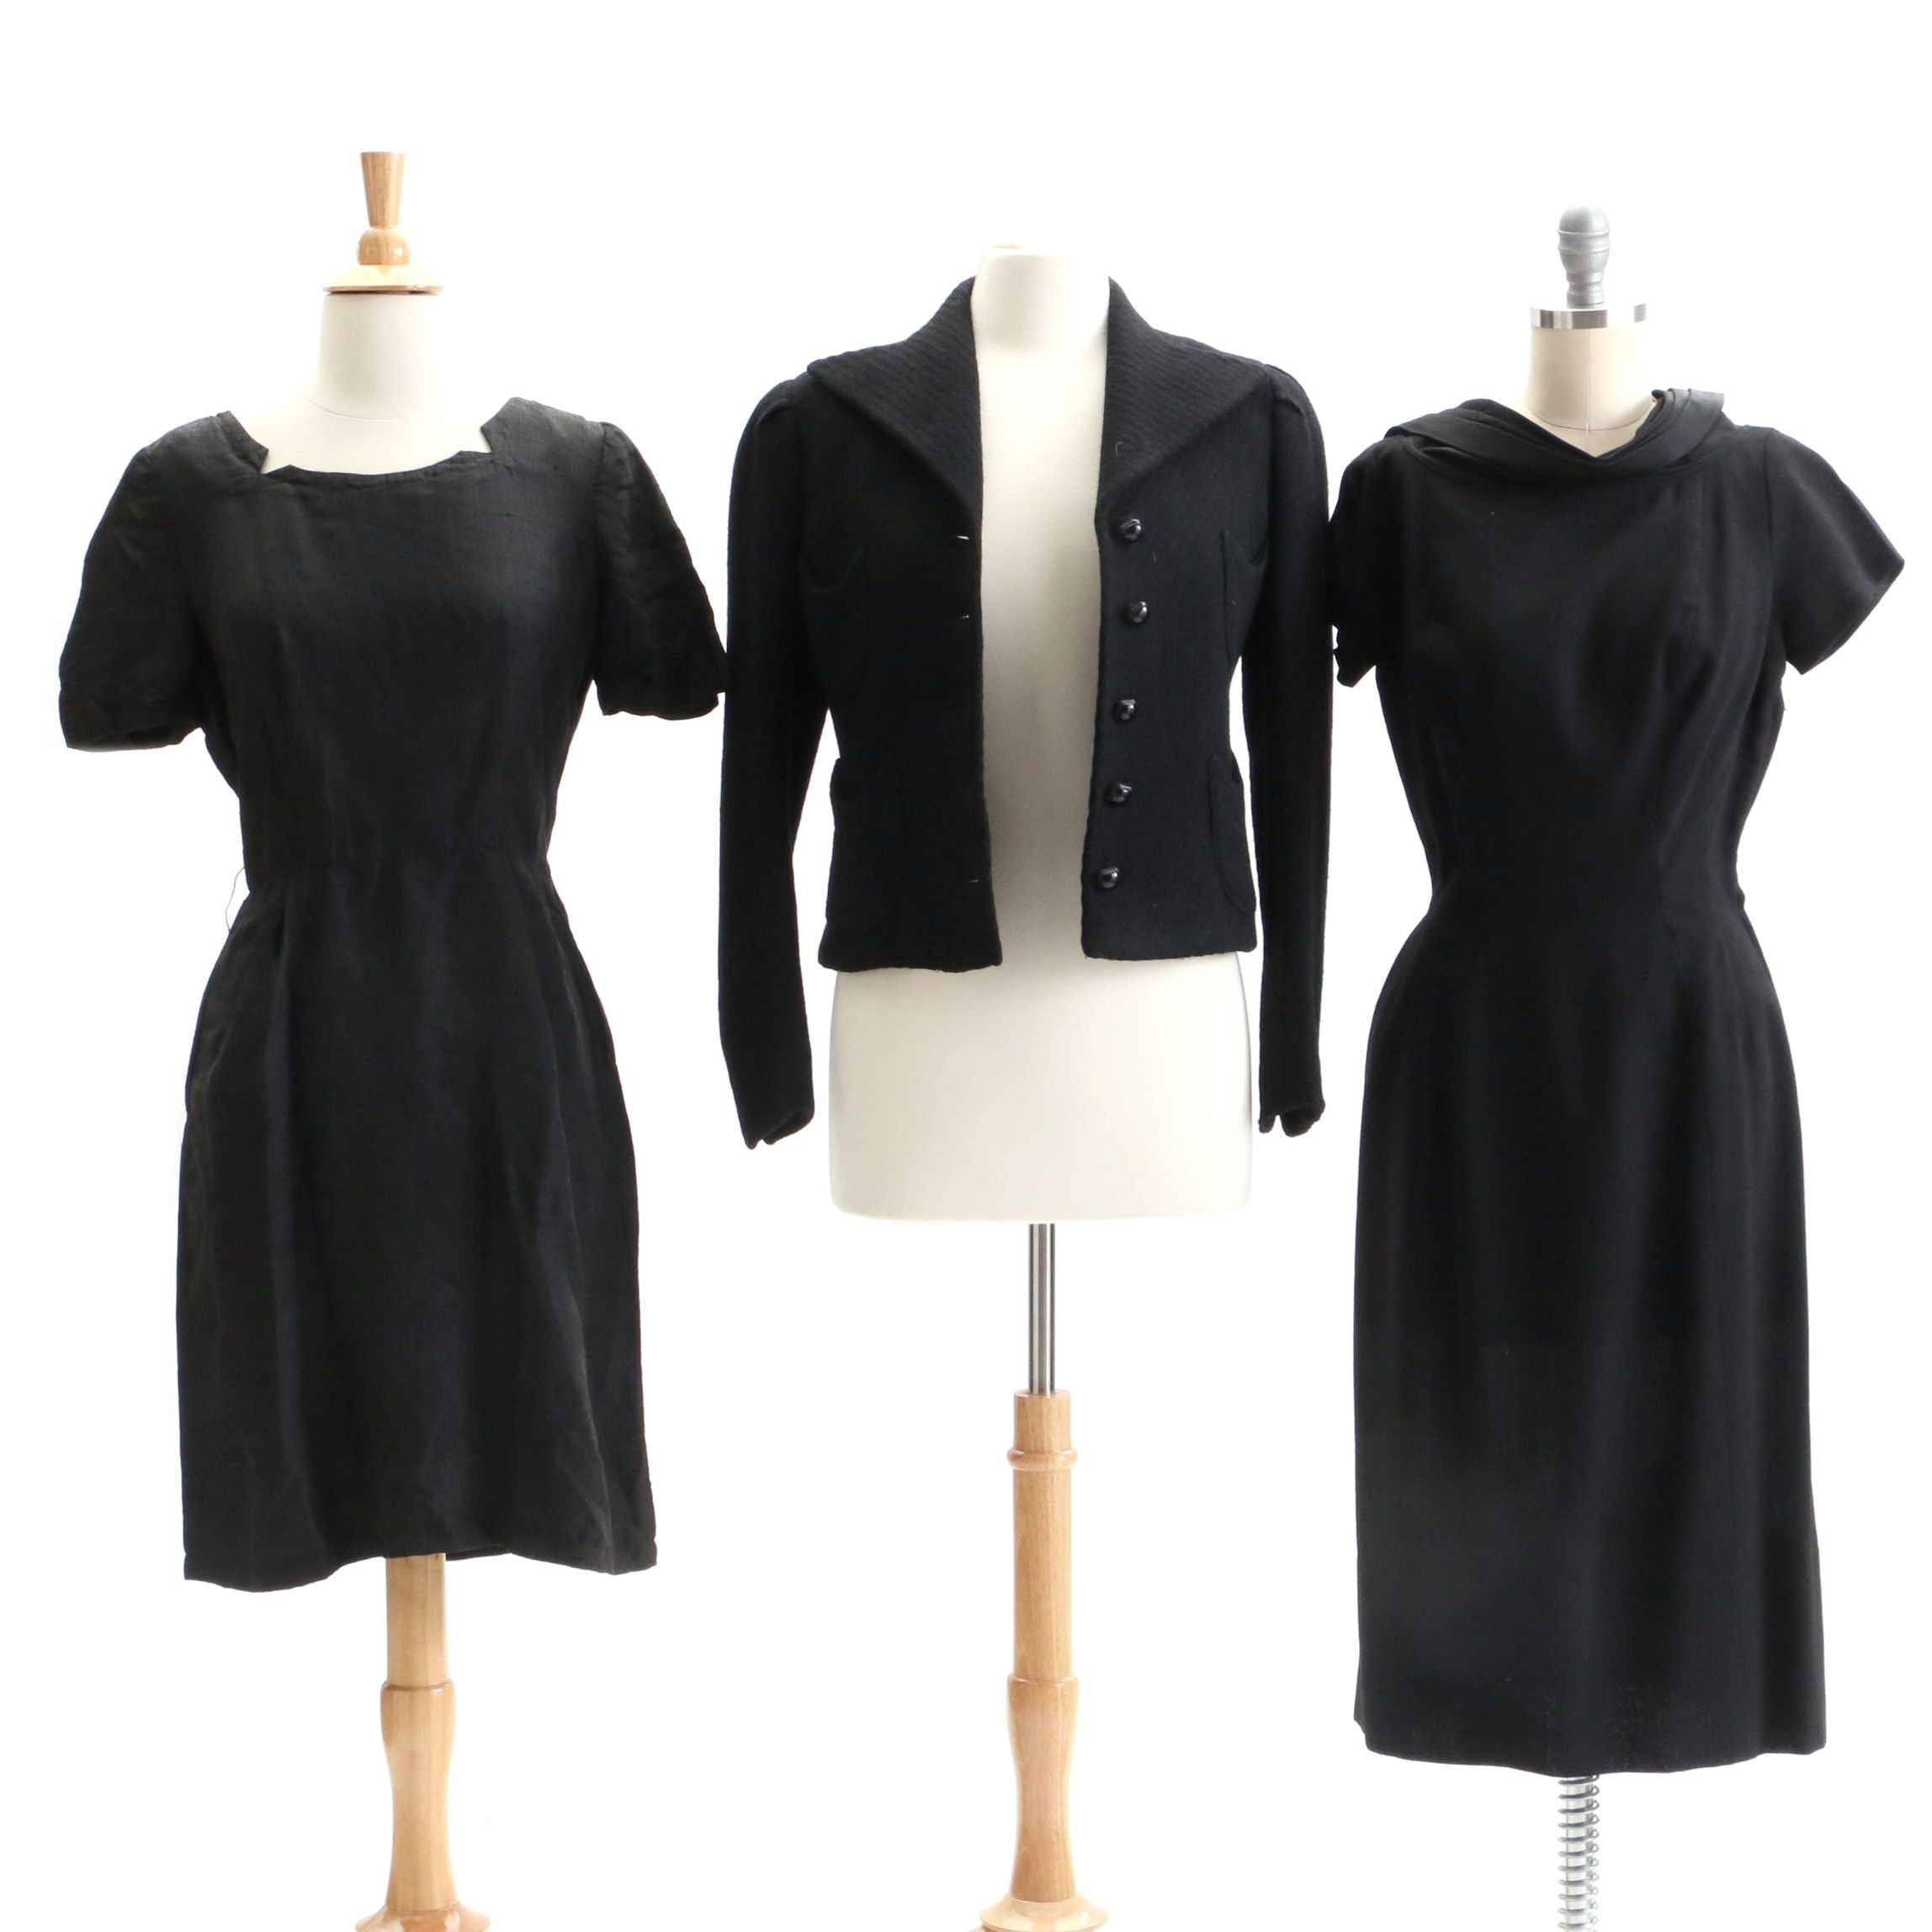 Circa 1960s Vintage Black Cocktail Dresses and Jacket